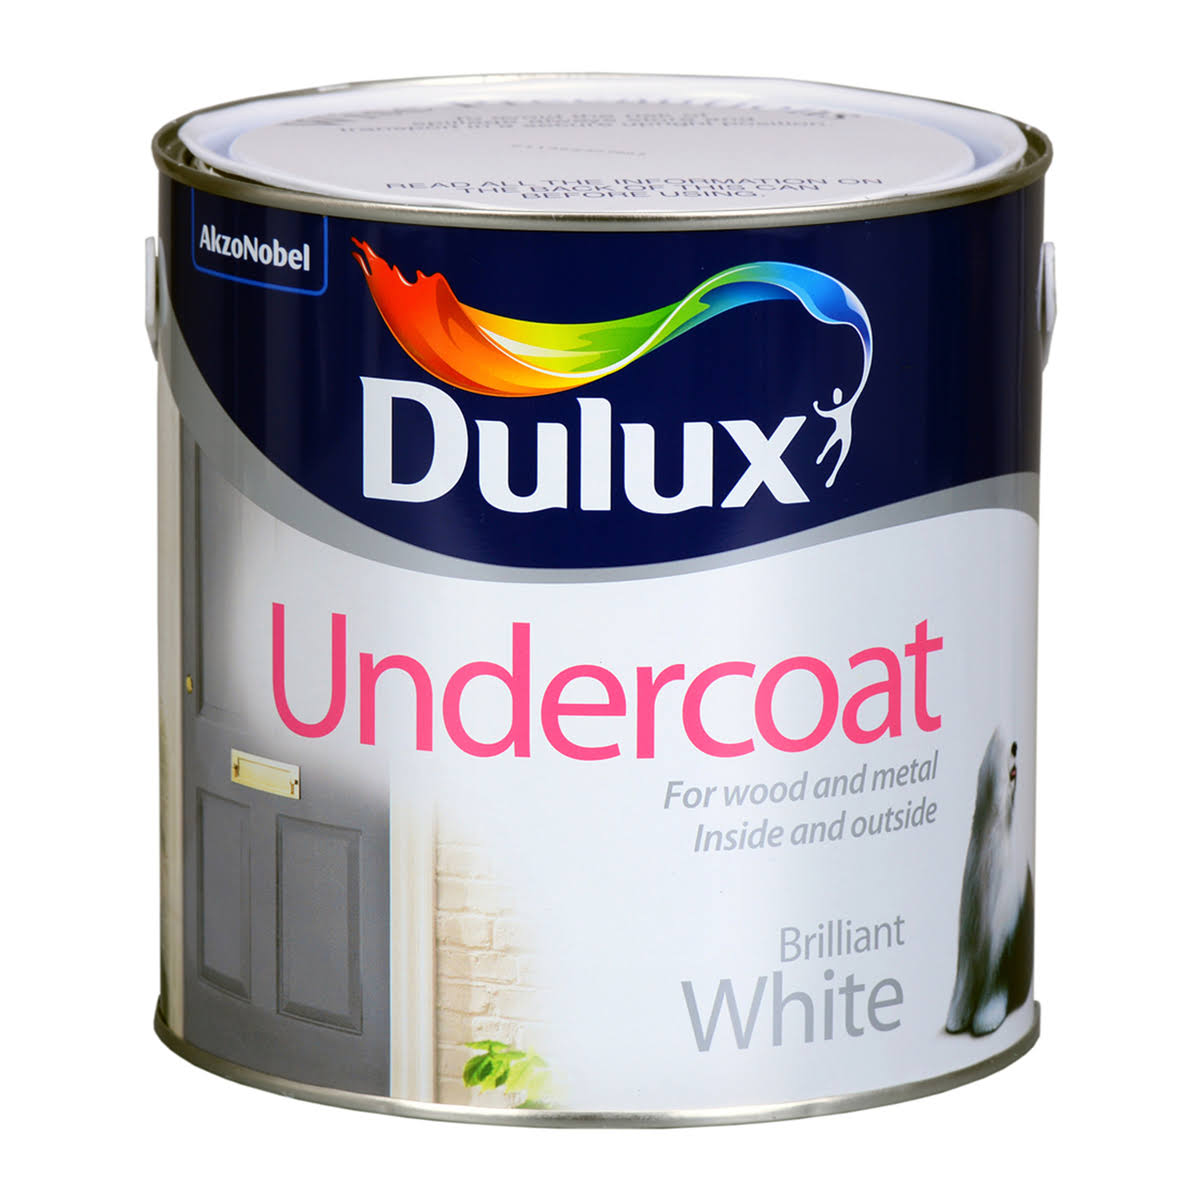 Dulux Undercoat Paint - Black